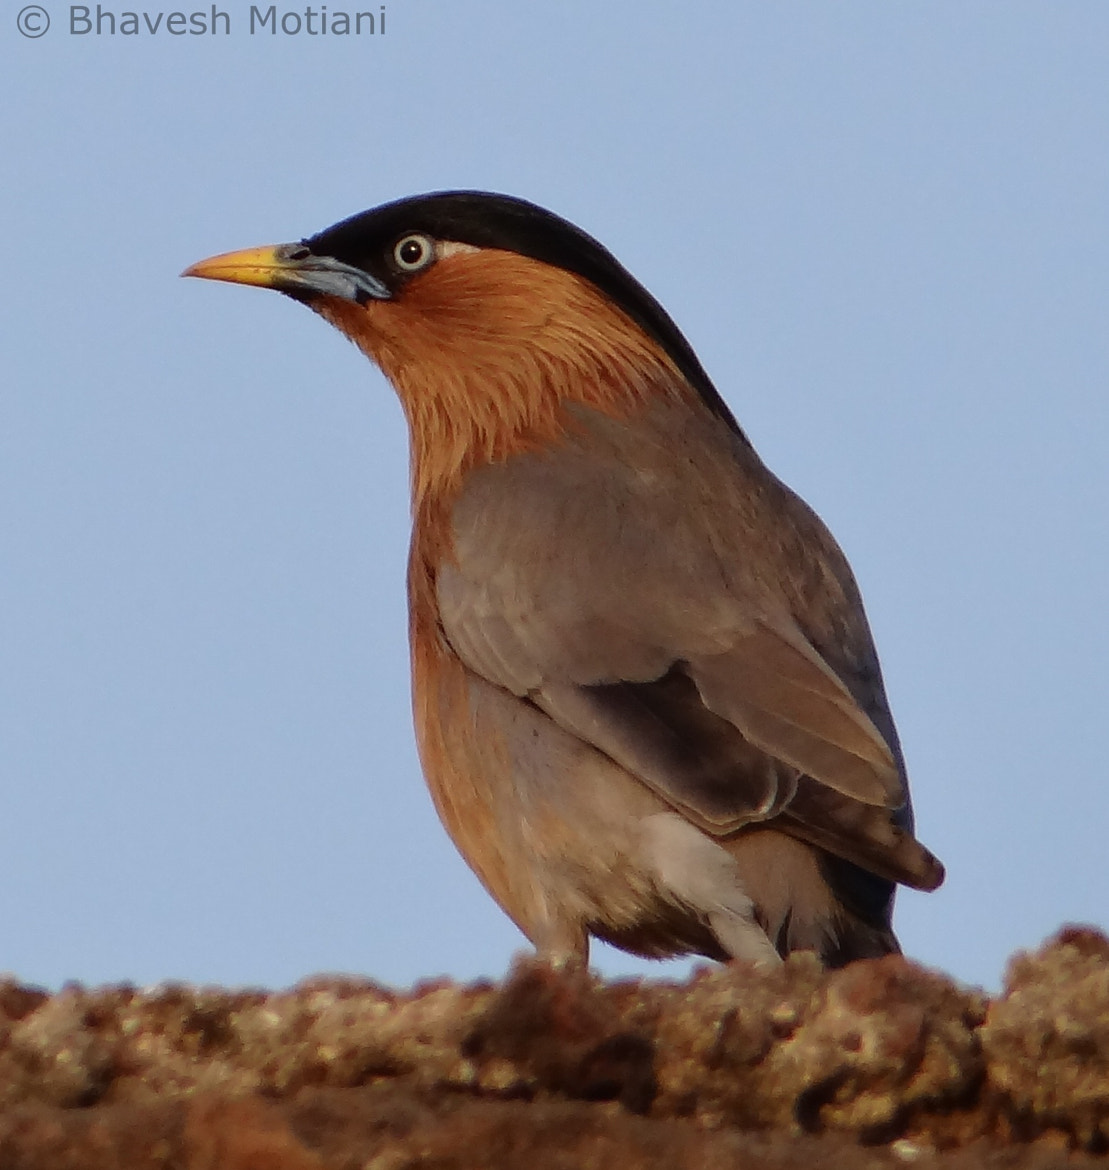 Photograph Brahminy Starling by Bhavesh Motiani on 500px